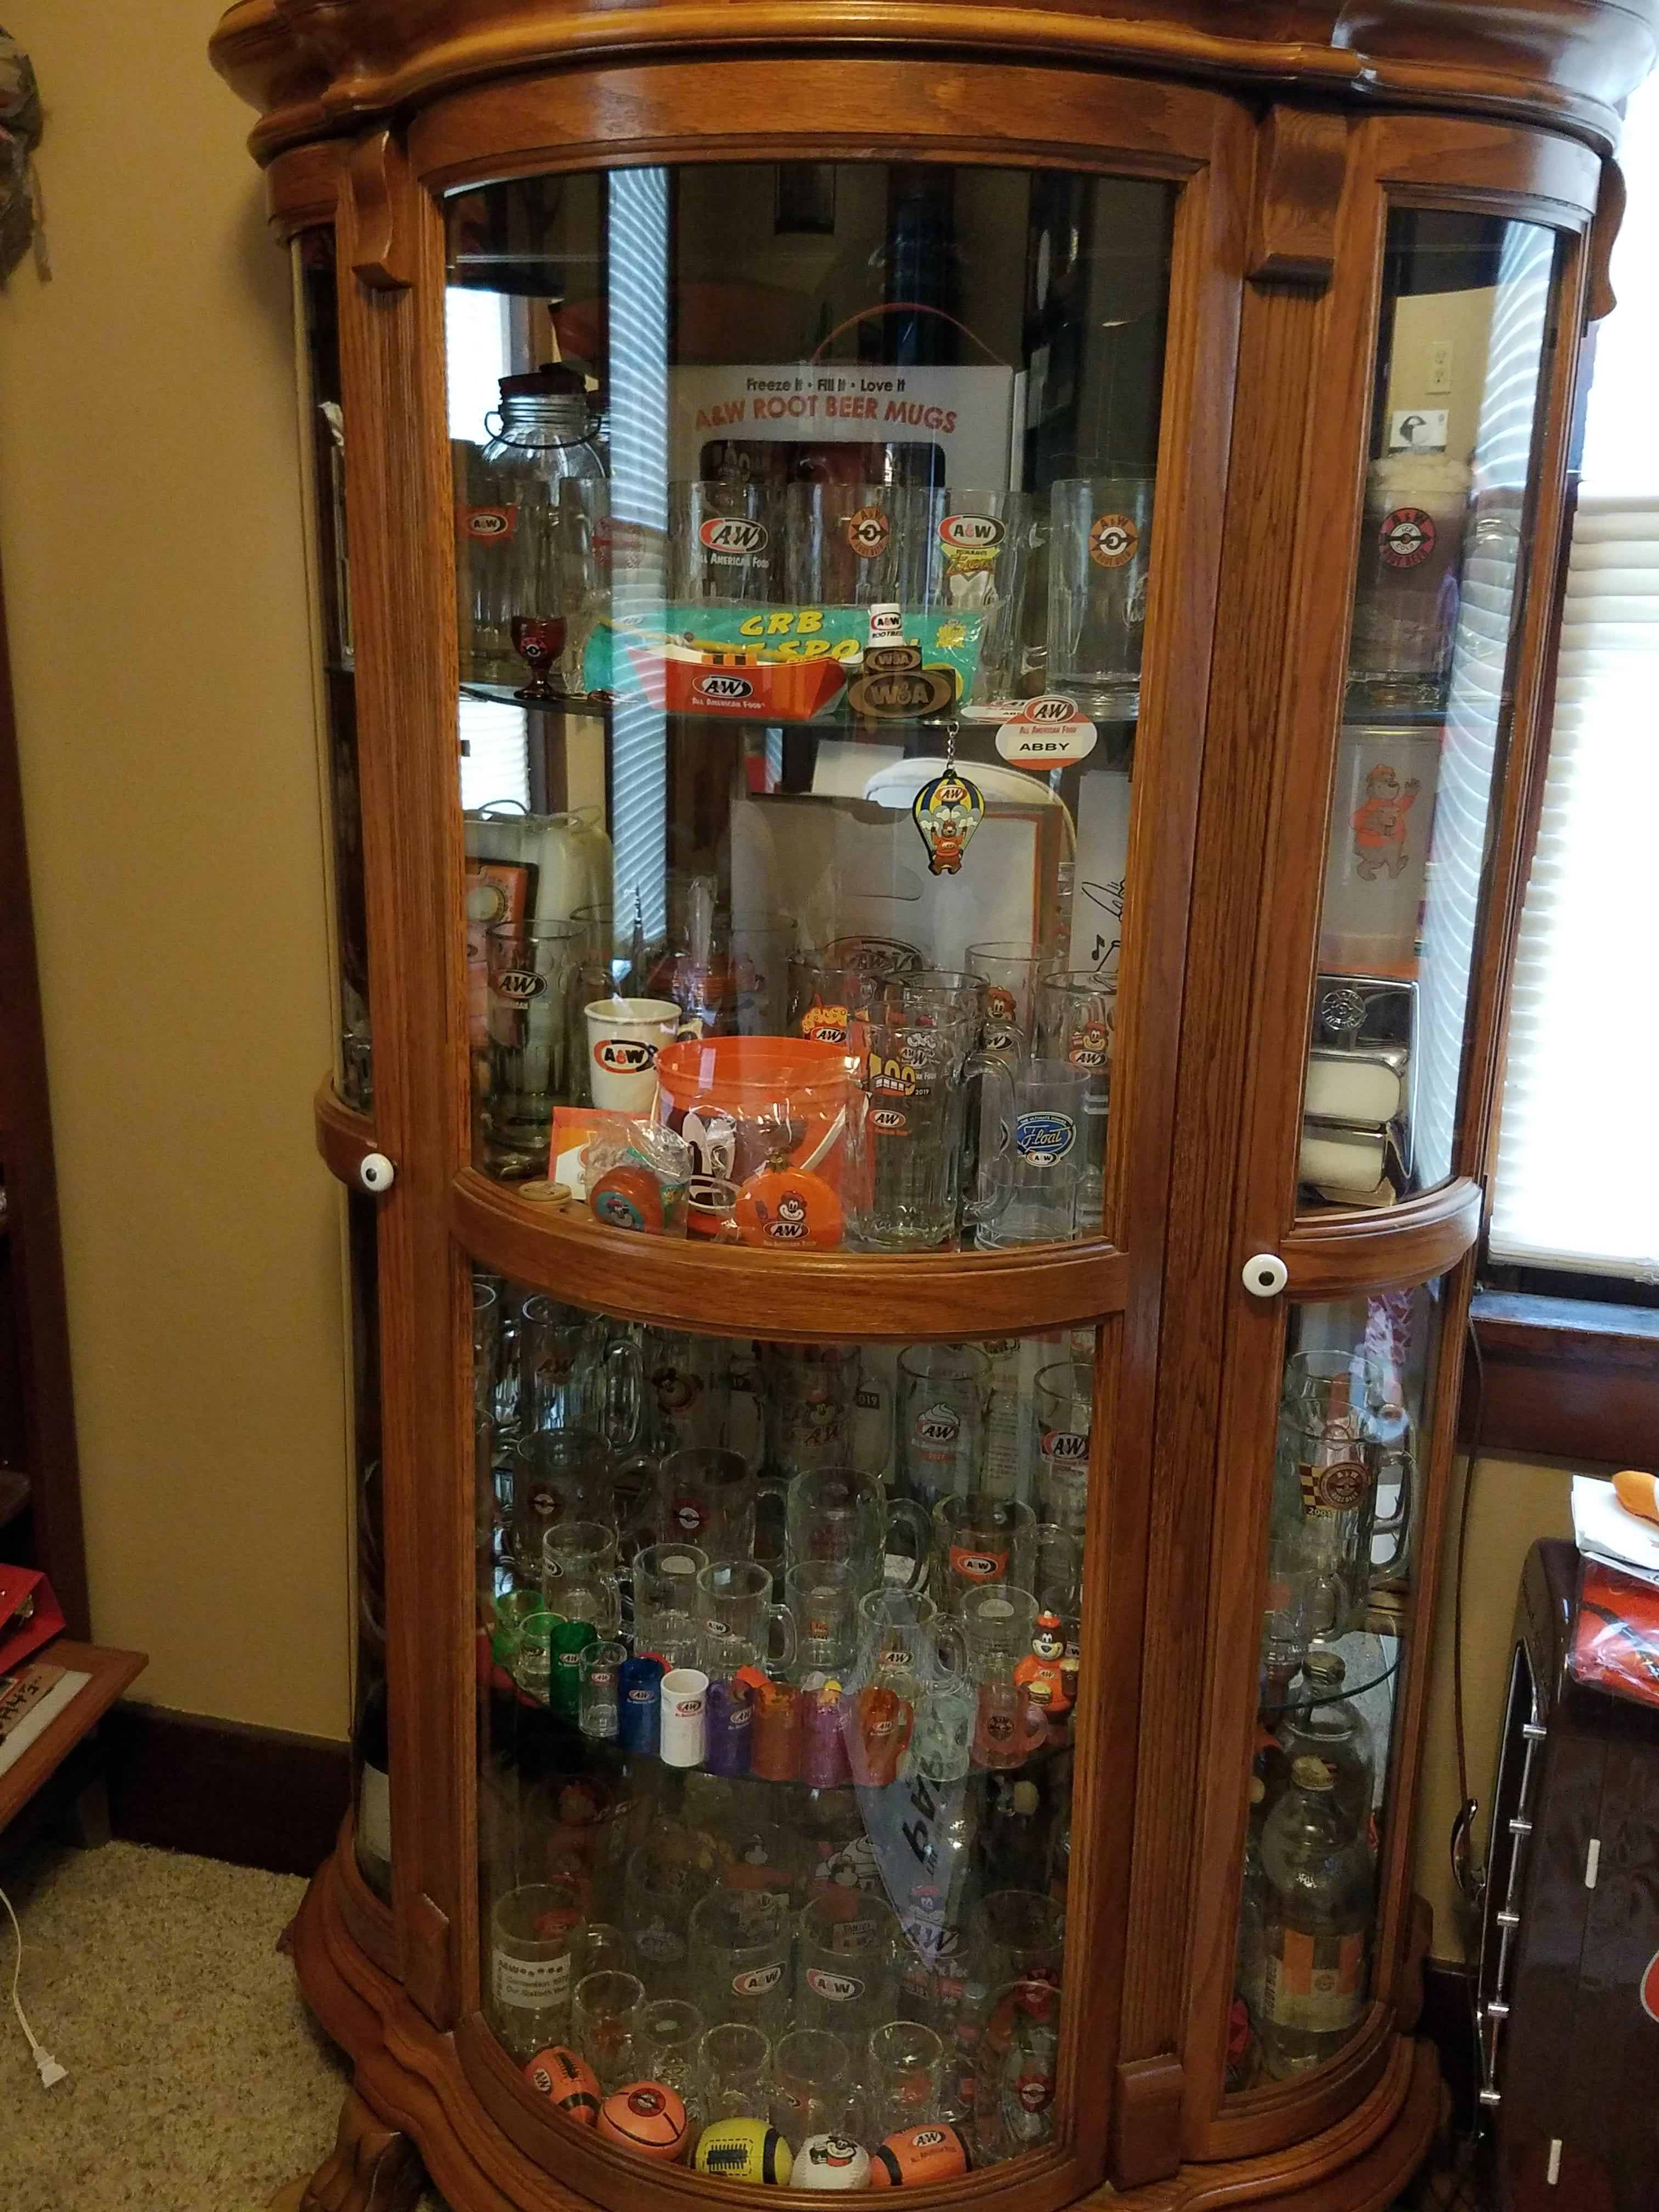 Photo of a display case containing various A&W Restaurants memorabilia and mugs.